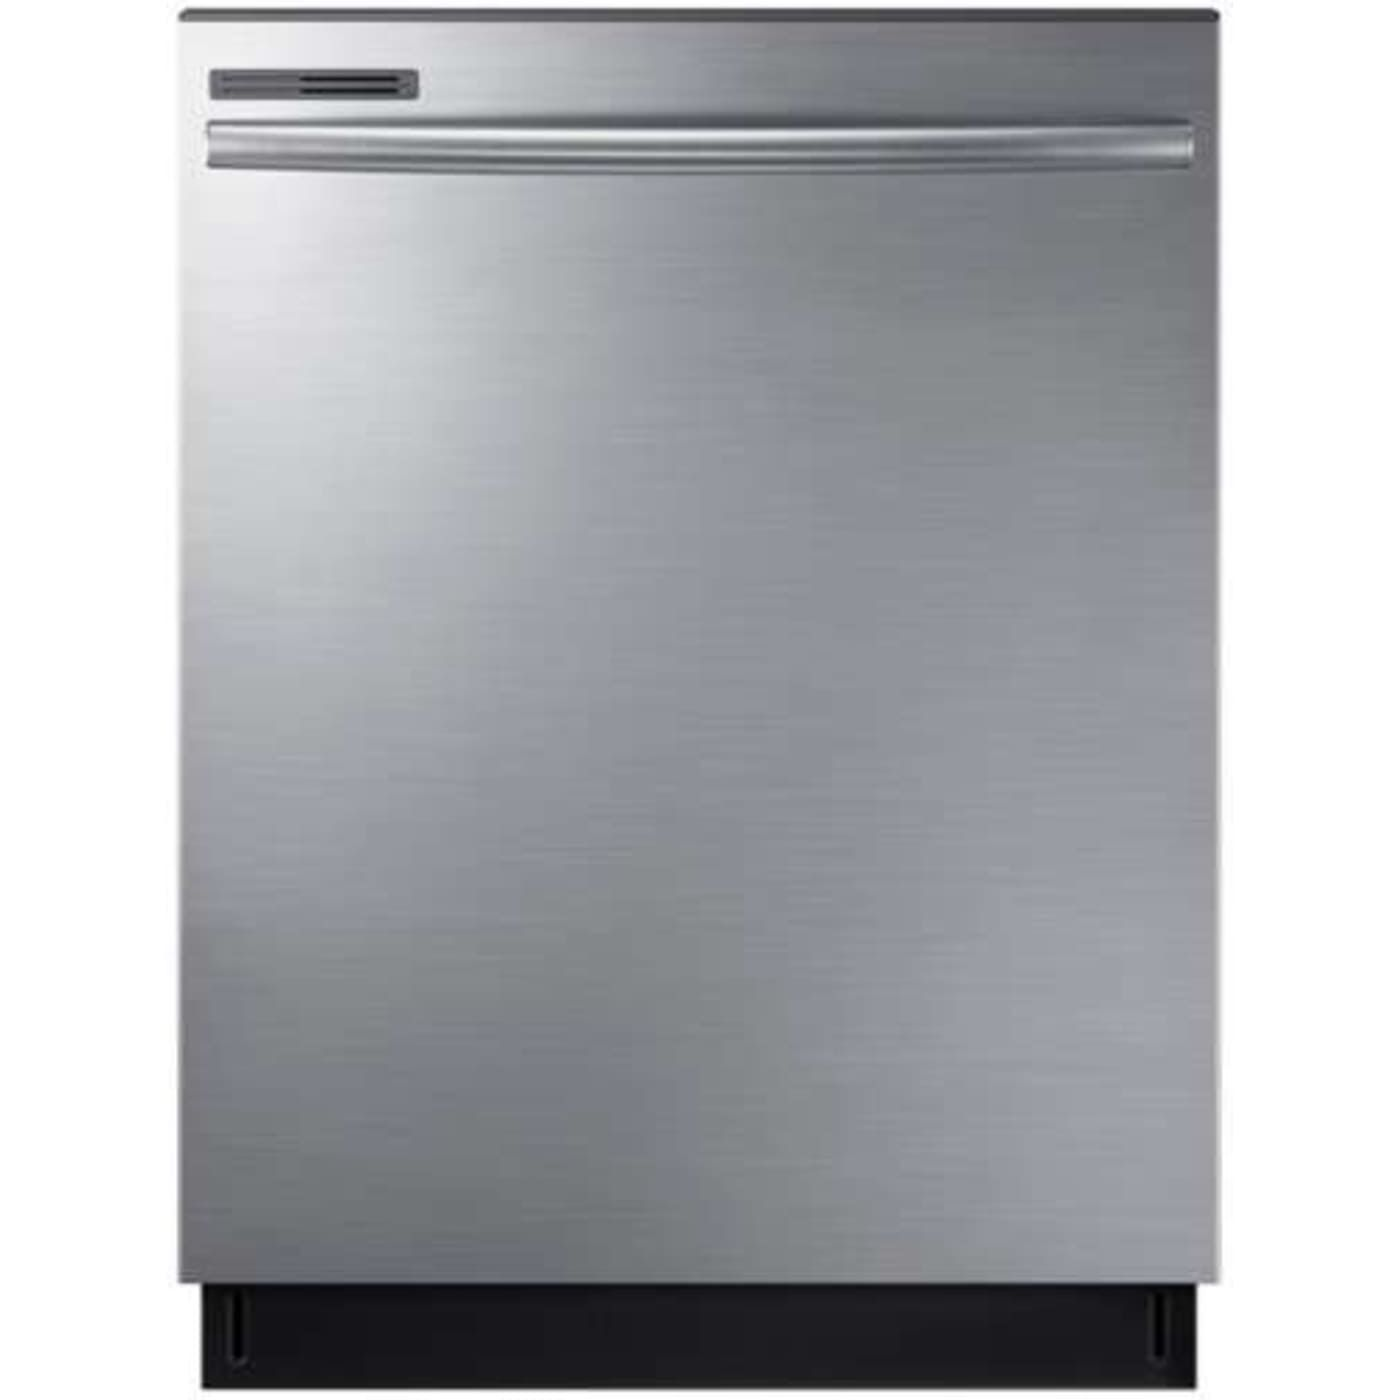 Dw80m2020us By Samsung Fully Integrated Dishwashers Goedekers